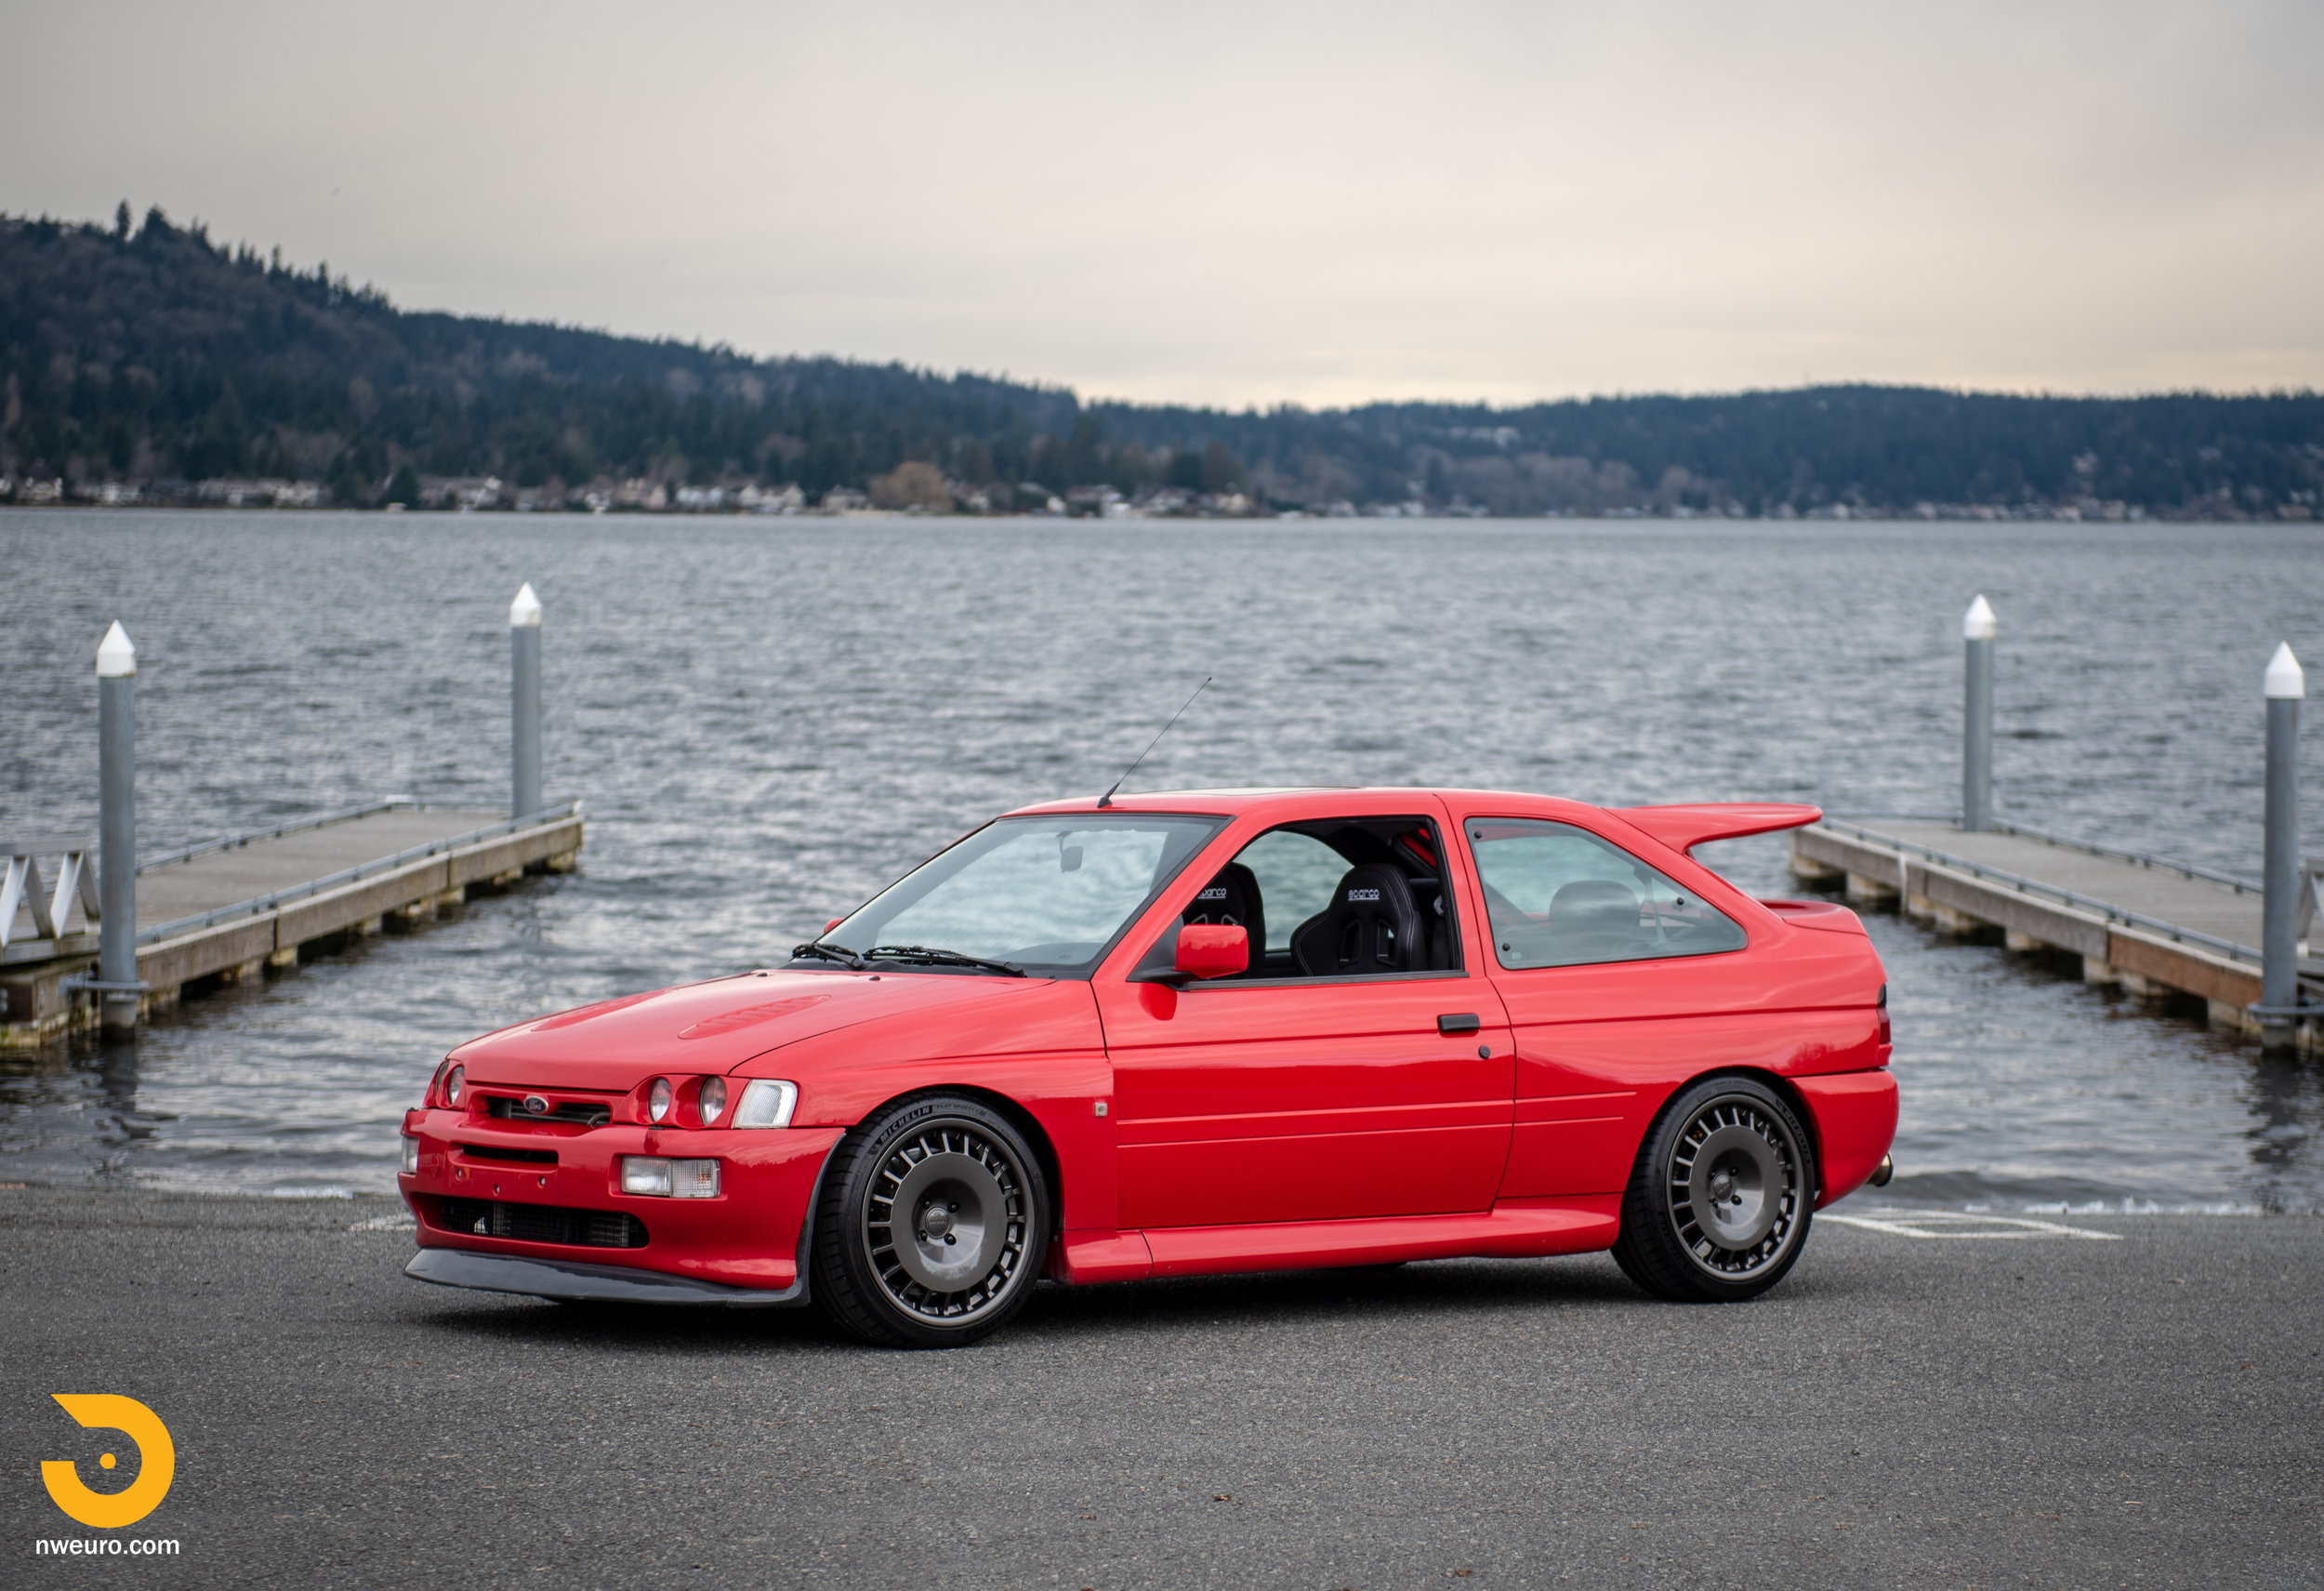 1993 Ford Escort Cosworth RS Red-11.jpg